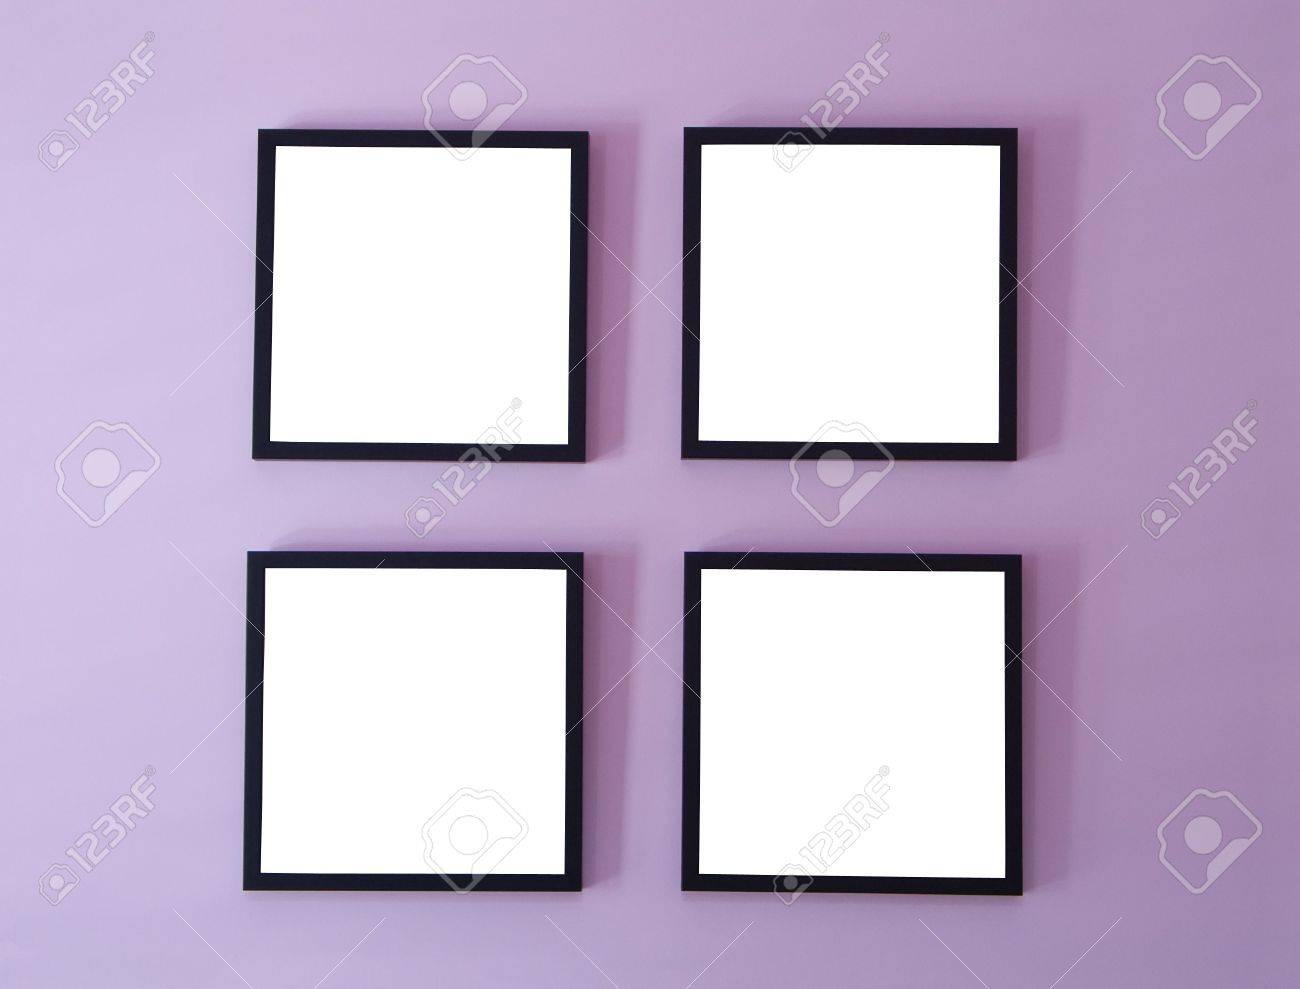 Four Frames On Wall Stock Photo, Picture And Royalty Free Image ...